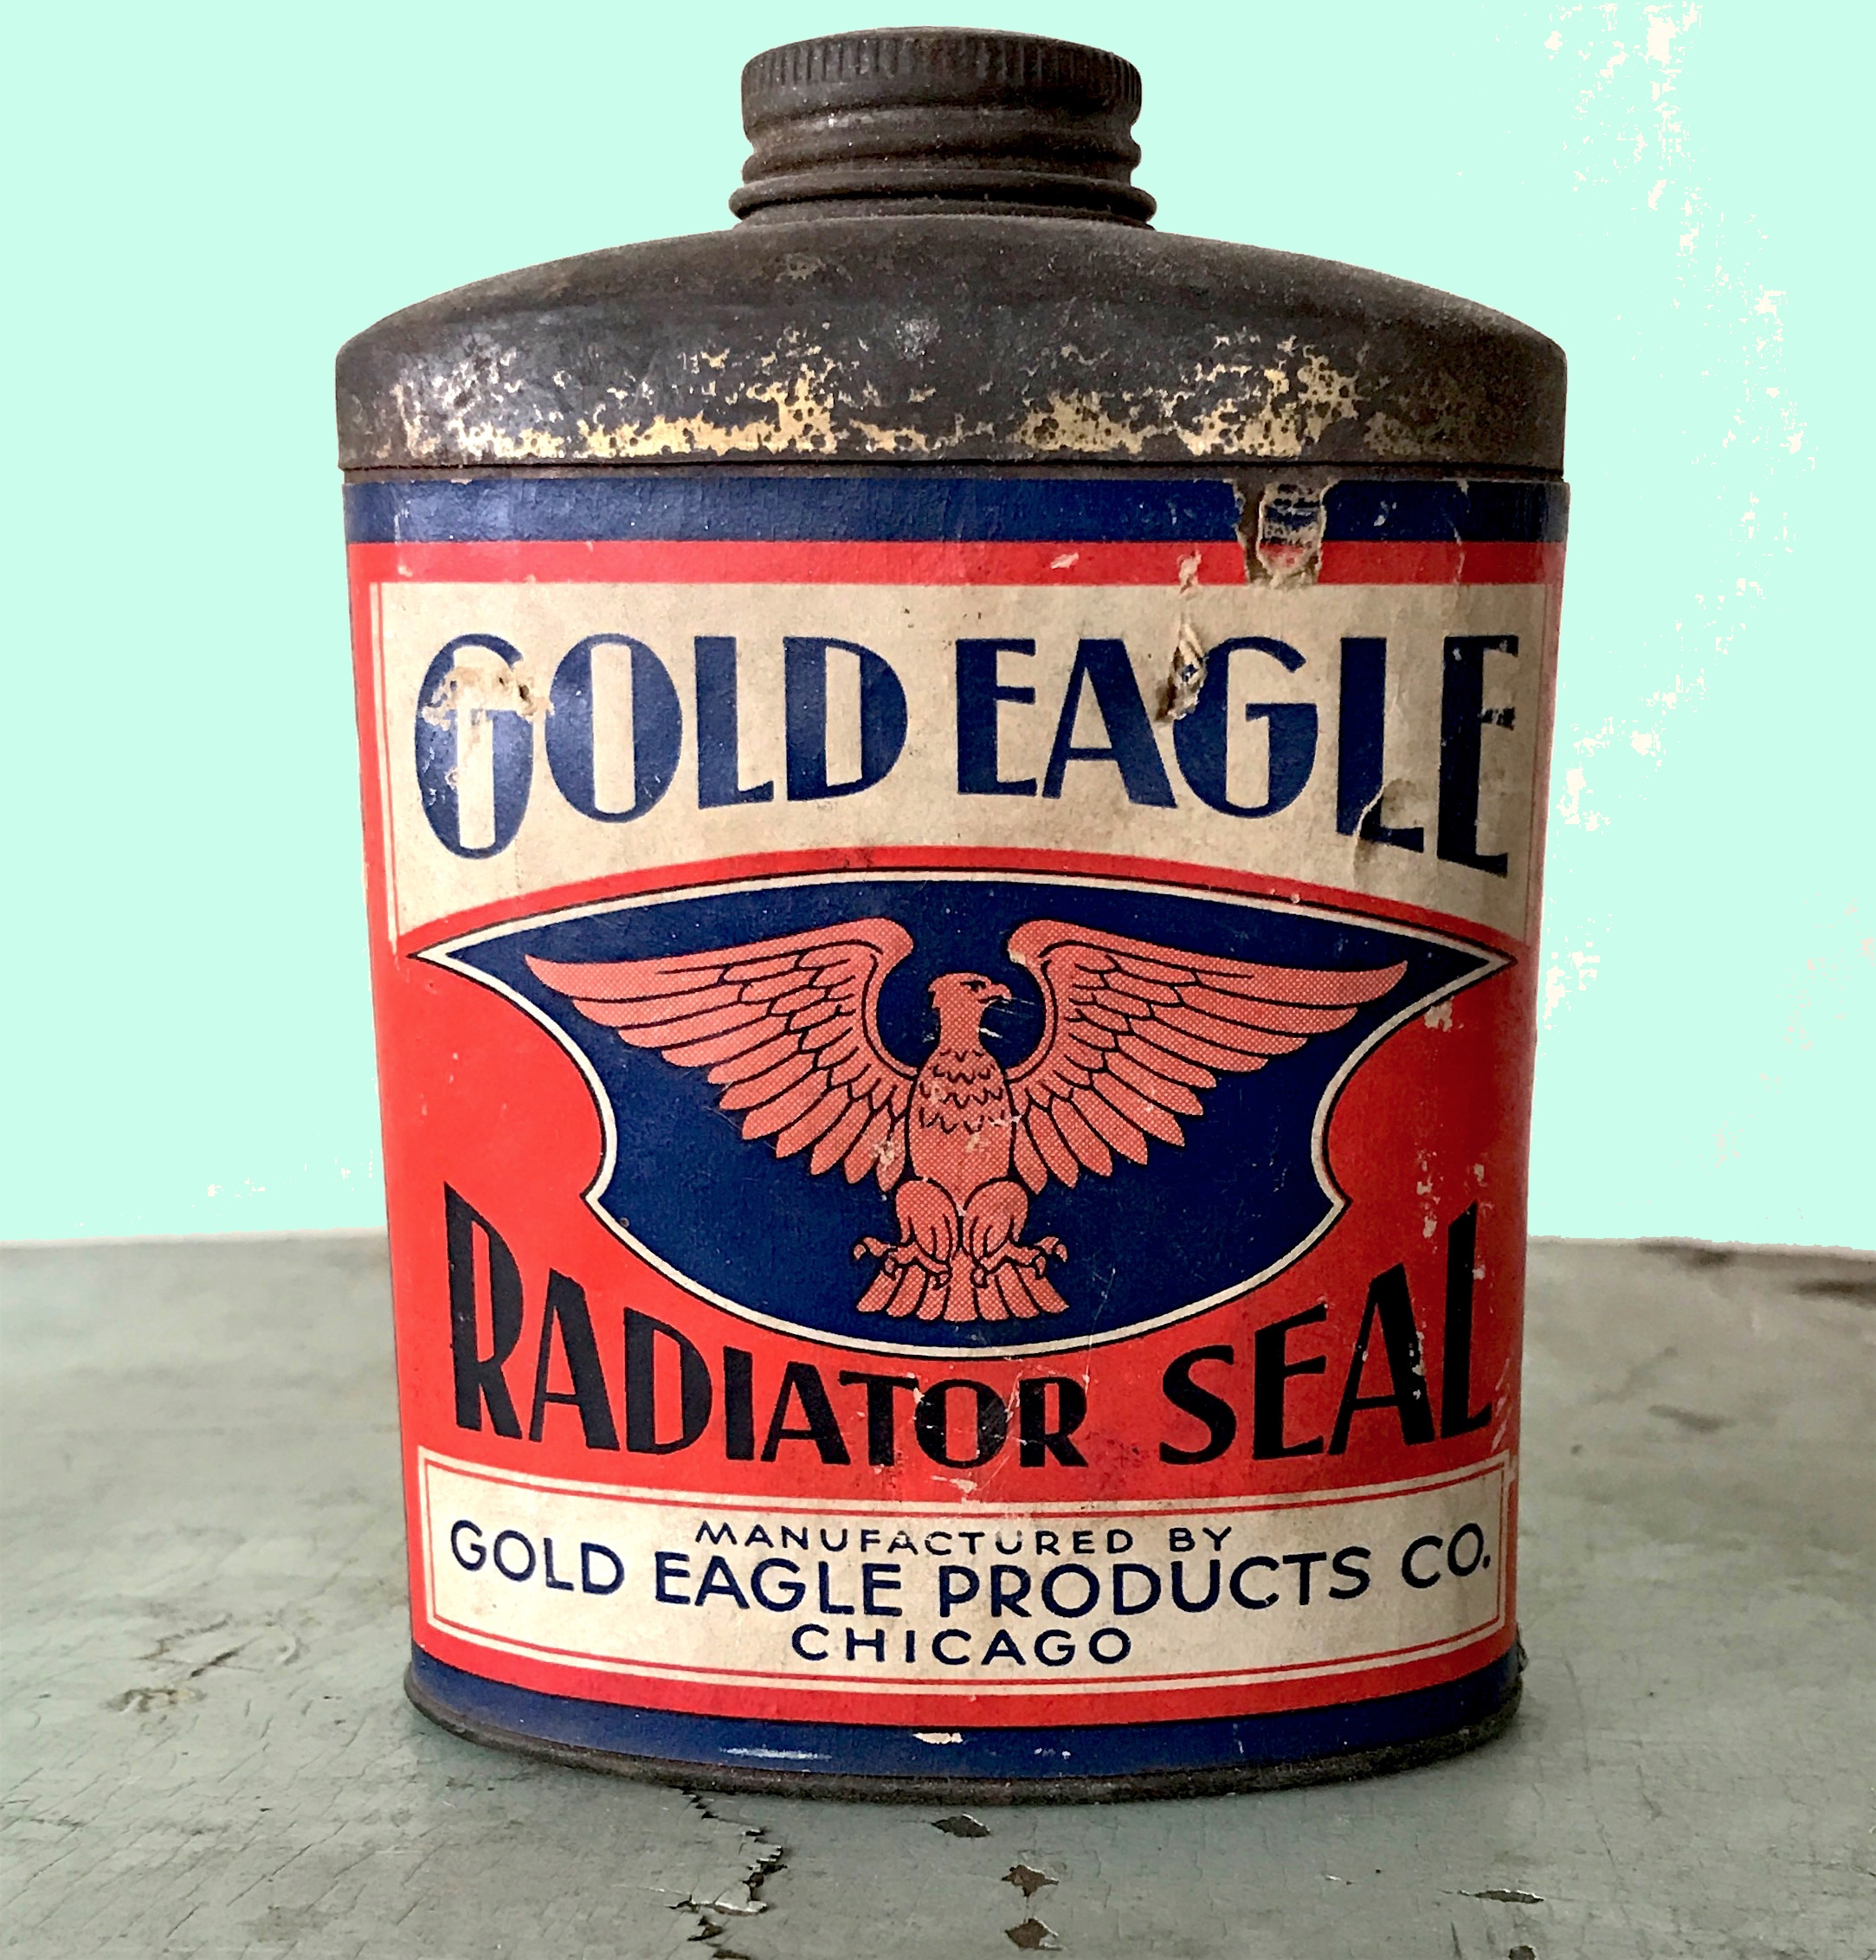 Gold Eagle Products Co., est. 1932